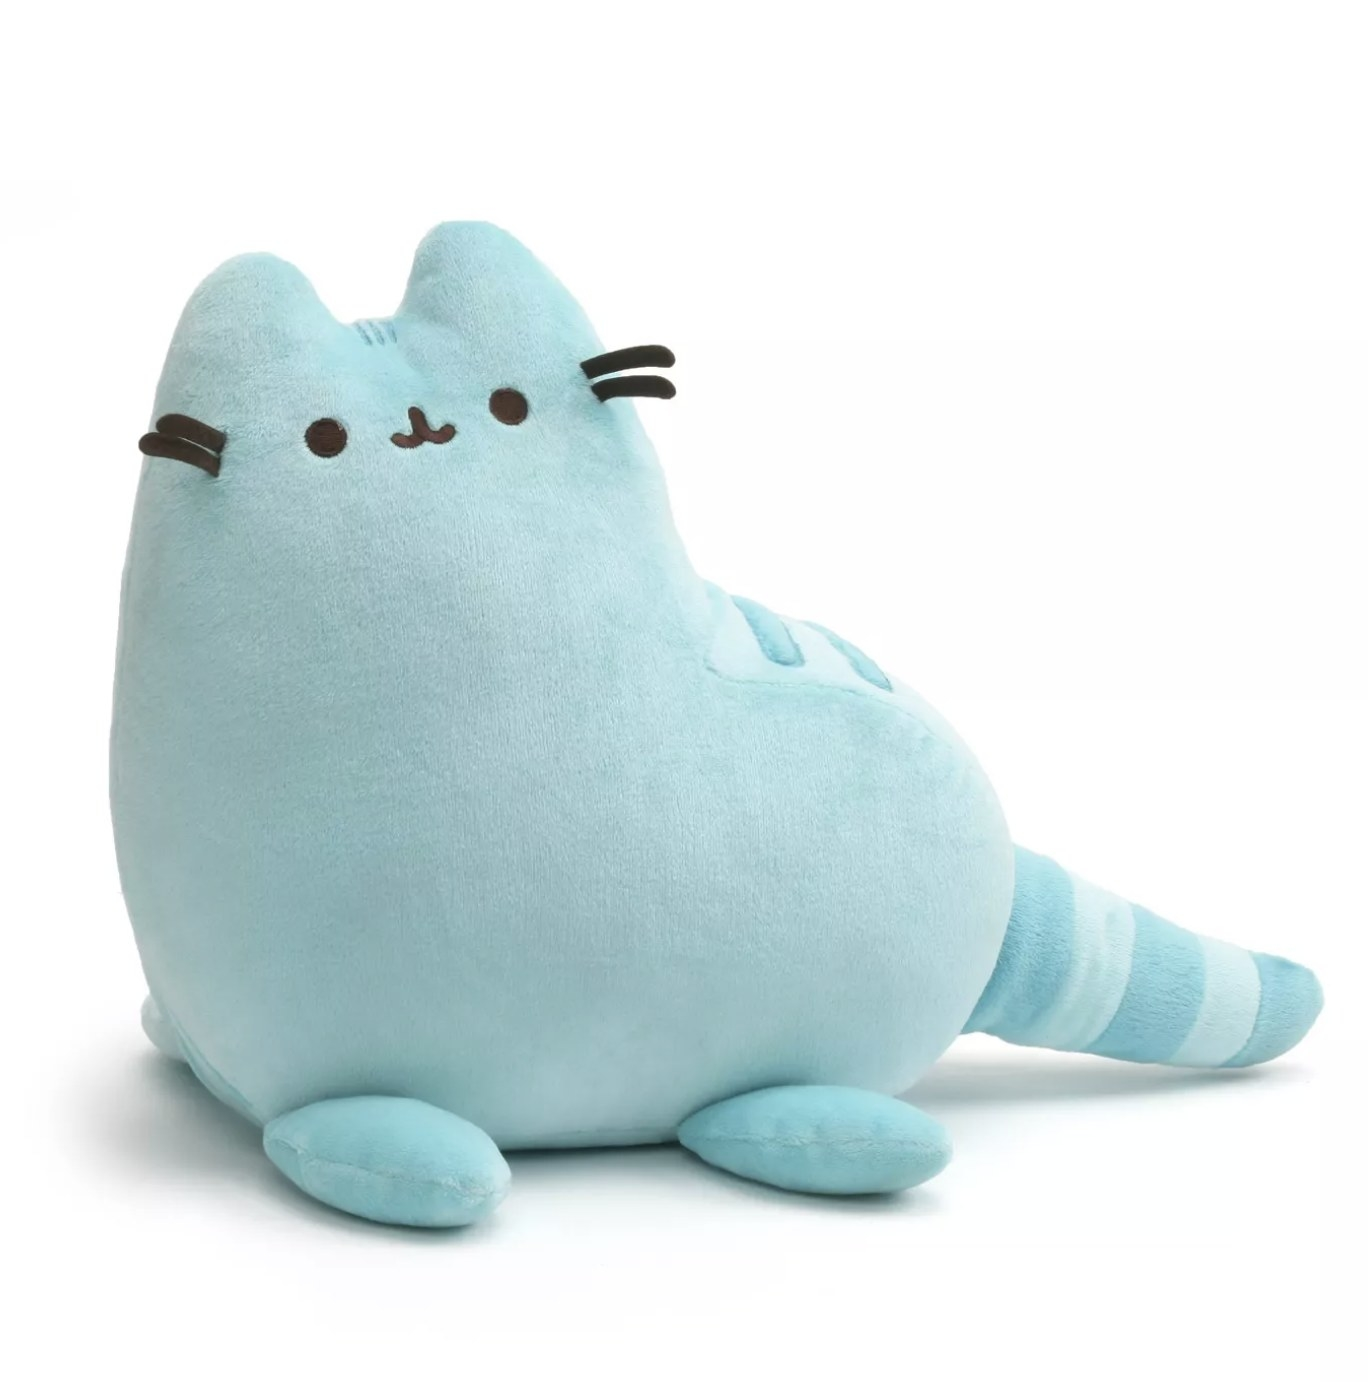 The blue dinosaur Pusheen cat